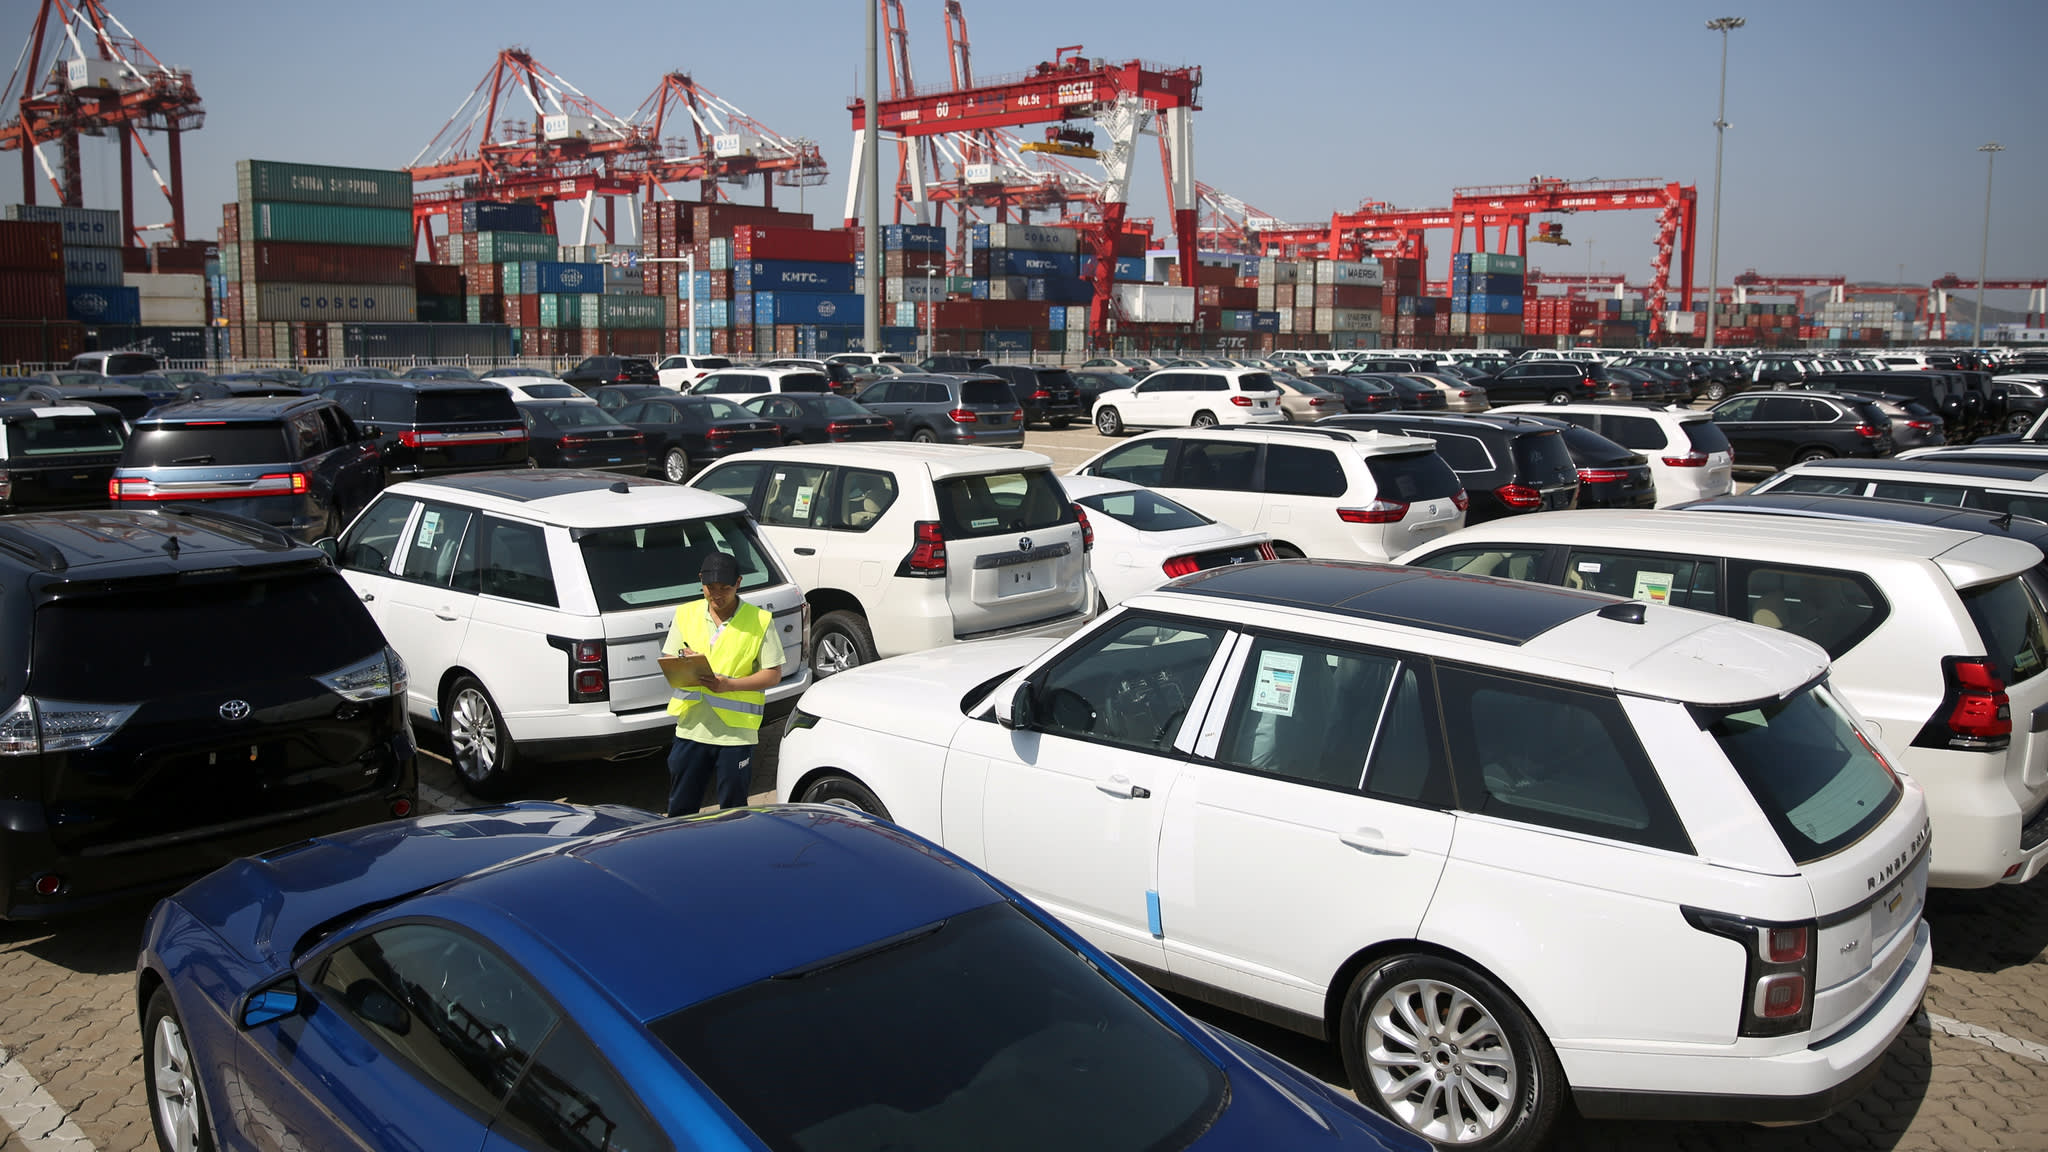 Nigerian Customs goes digital to curb vehicle smuggling through land borders